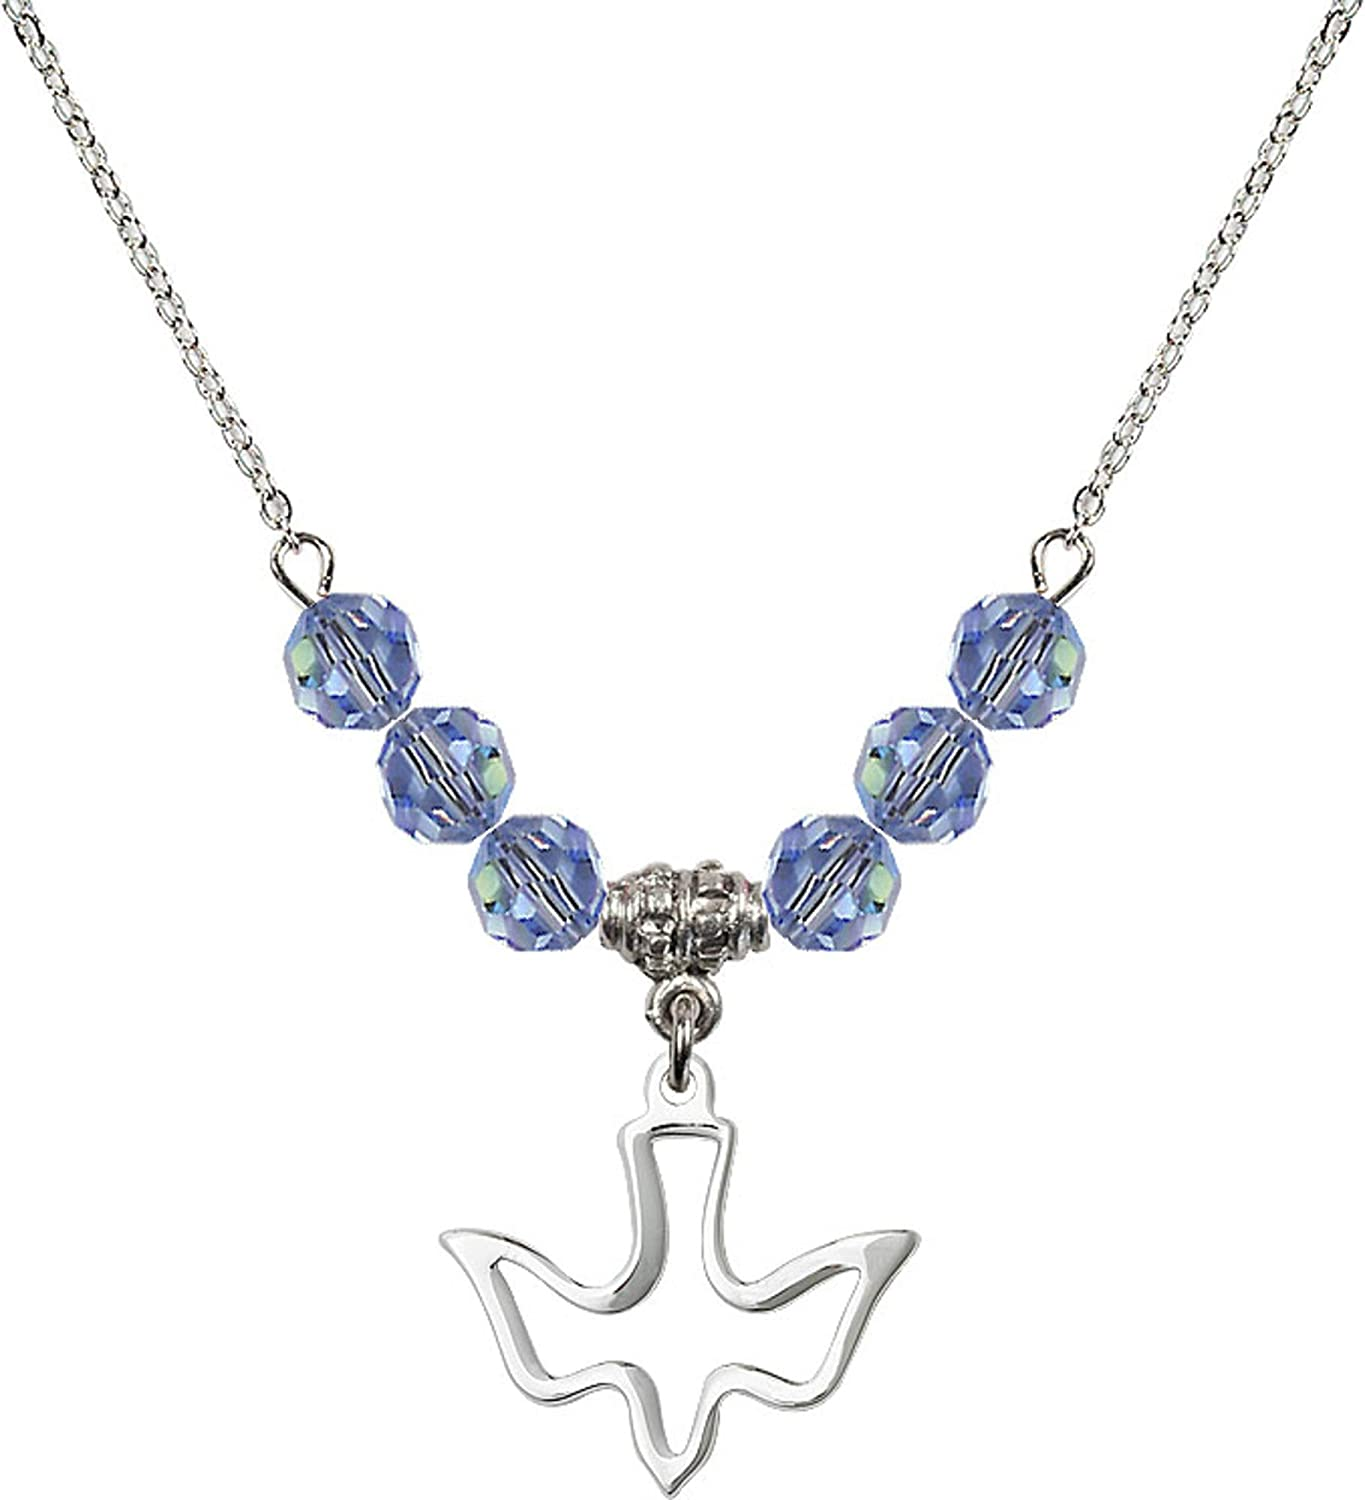 Bonyak Jewelry 18 Inch Rhodium Plated Necklace w// 6mm Light Blue September Birth Month Stone Beads and Holy Spirit Charm